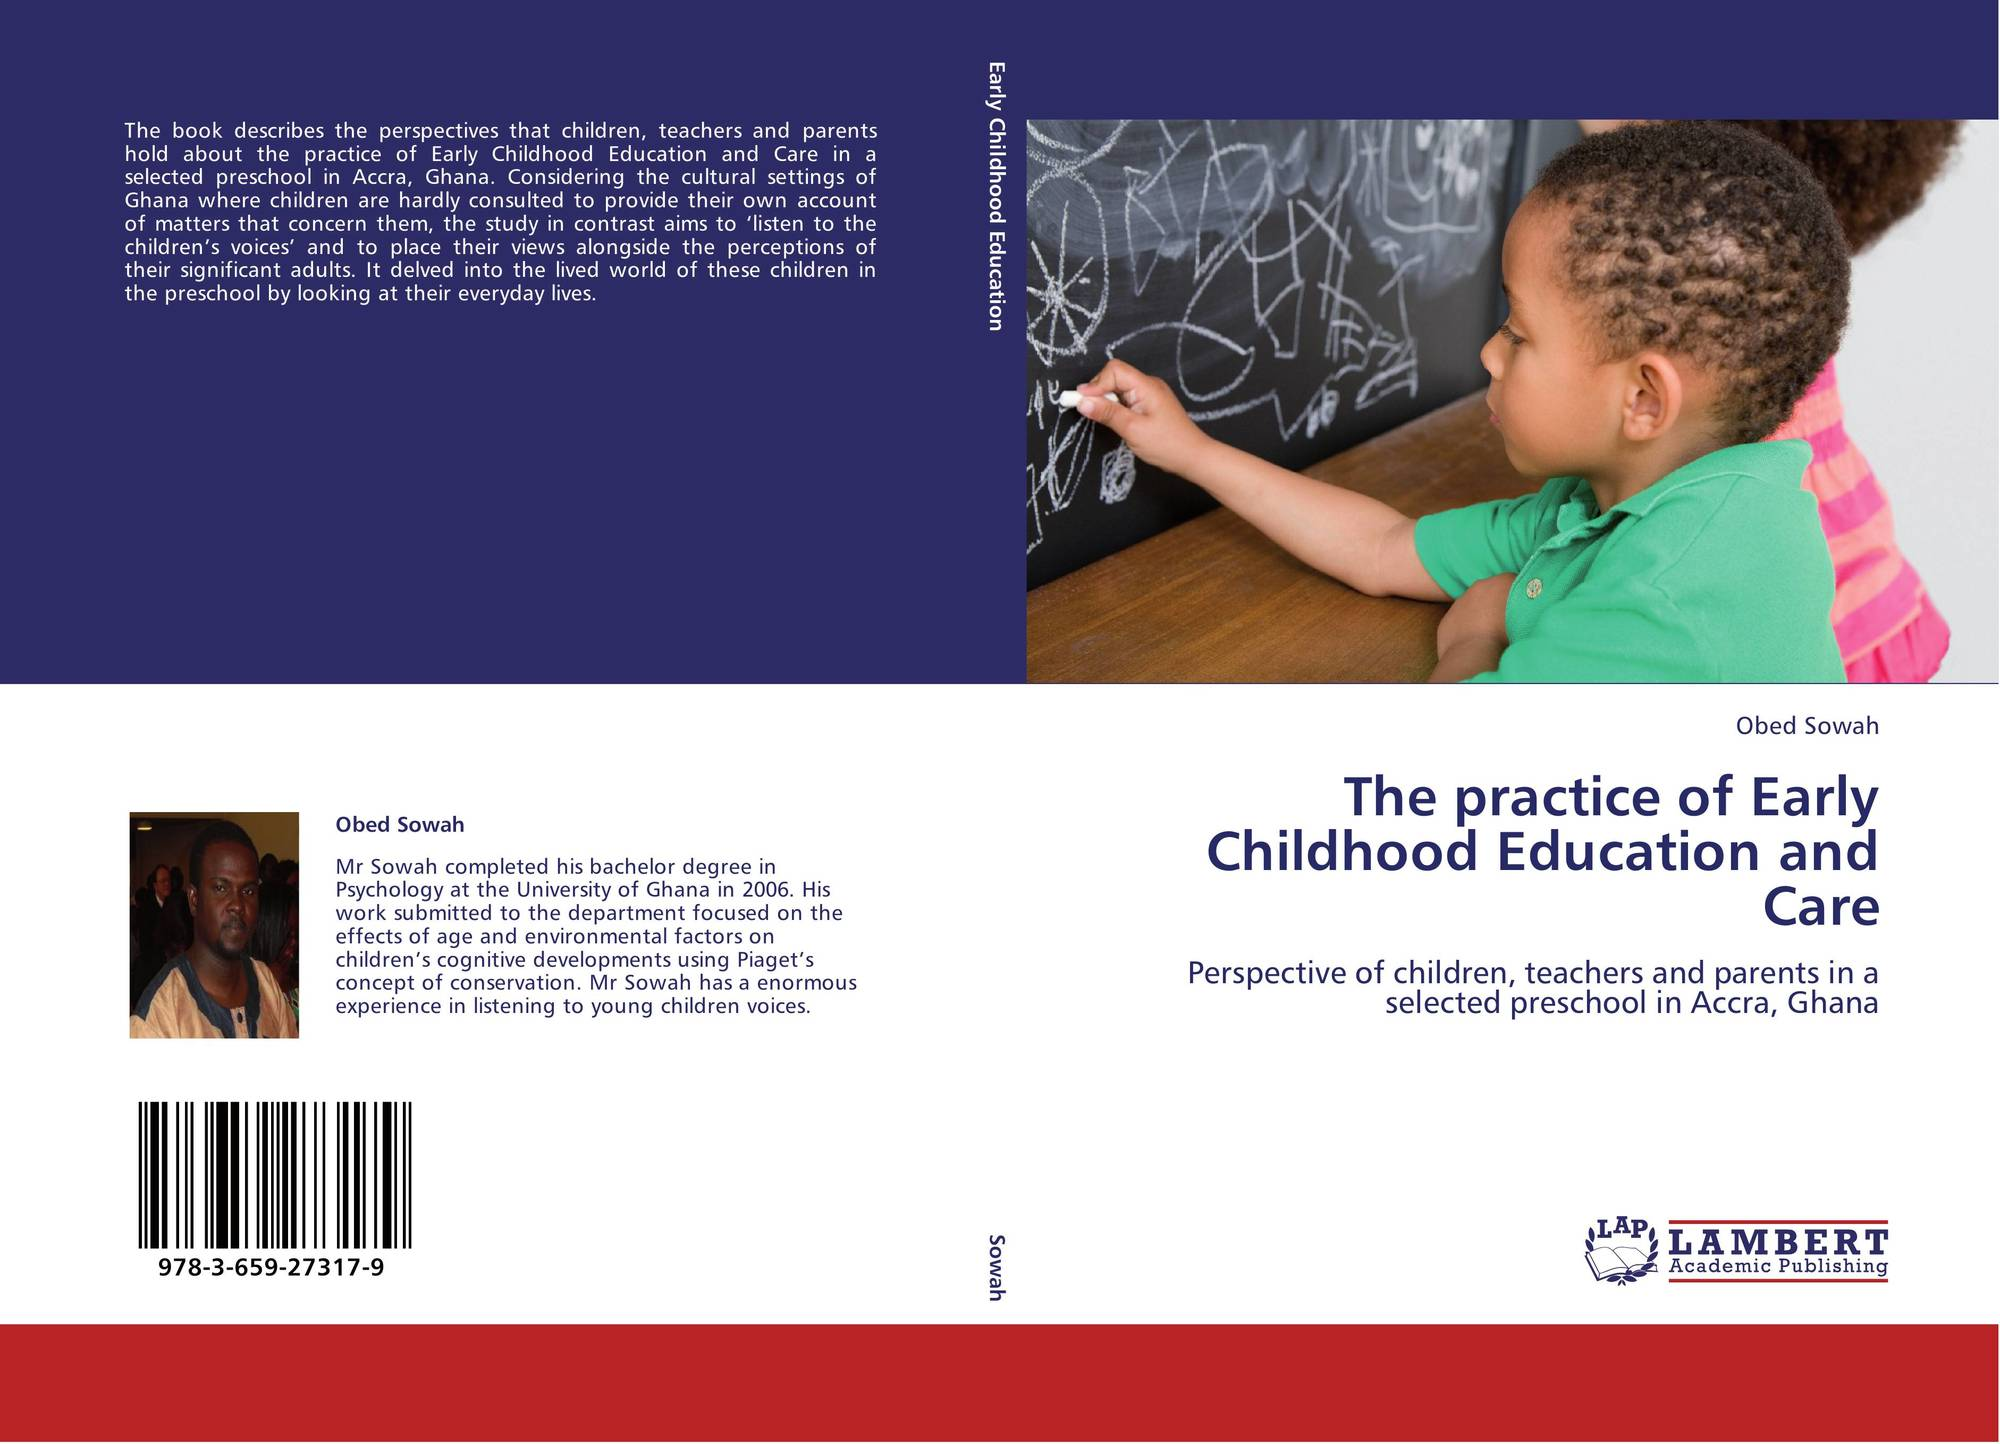 analysis of pre school in three cultures Preschool in three cultures study (tobin, wu, & davidson, 1989) provides an excellent framework for examining the similarities and differences of enculturation in three different cultures: china, japan, and the united states.